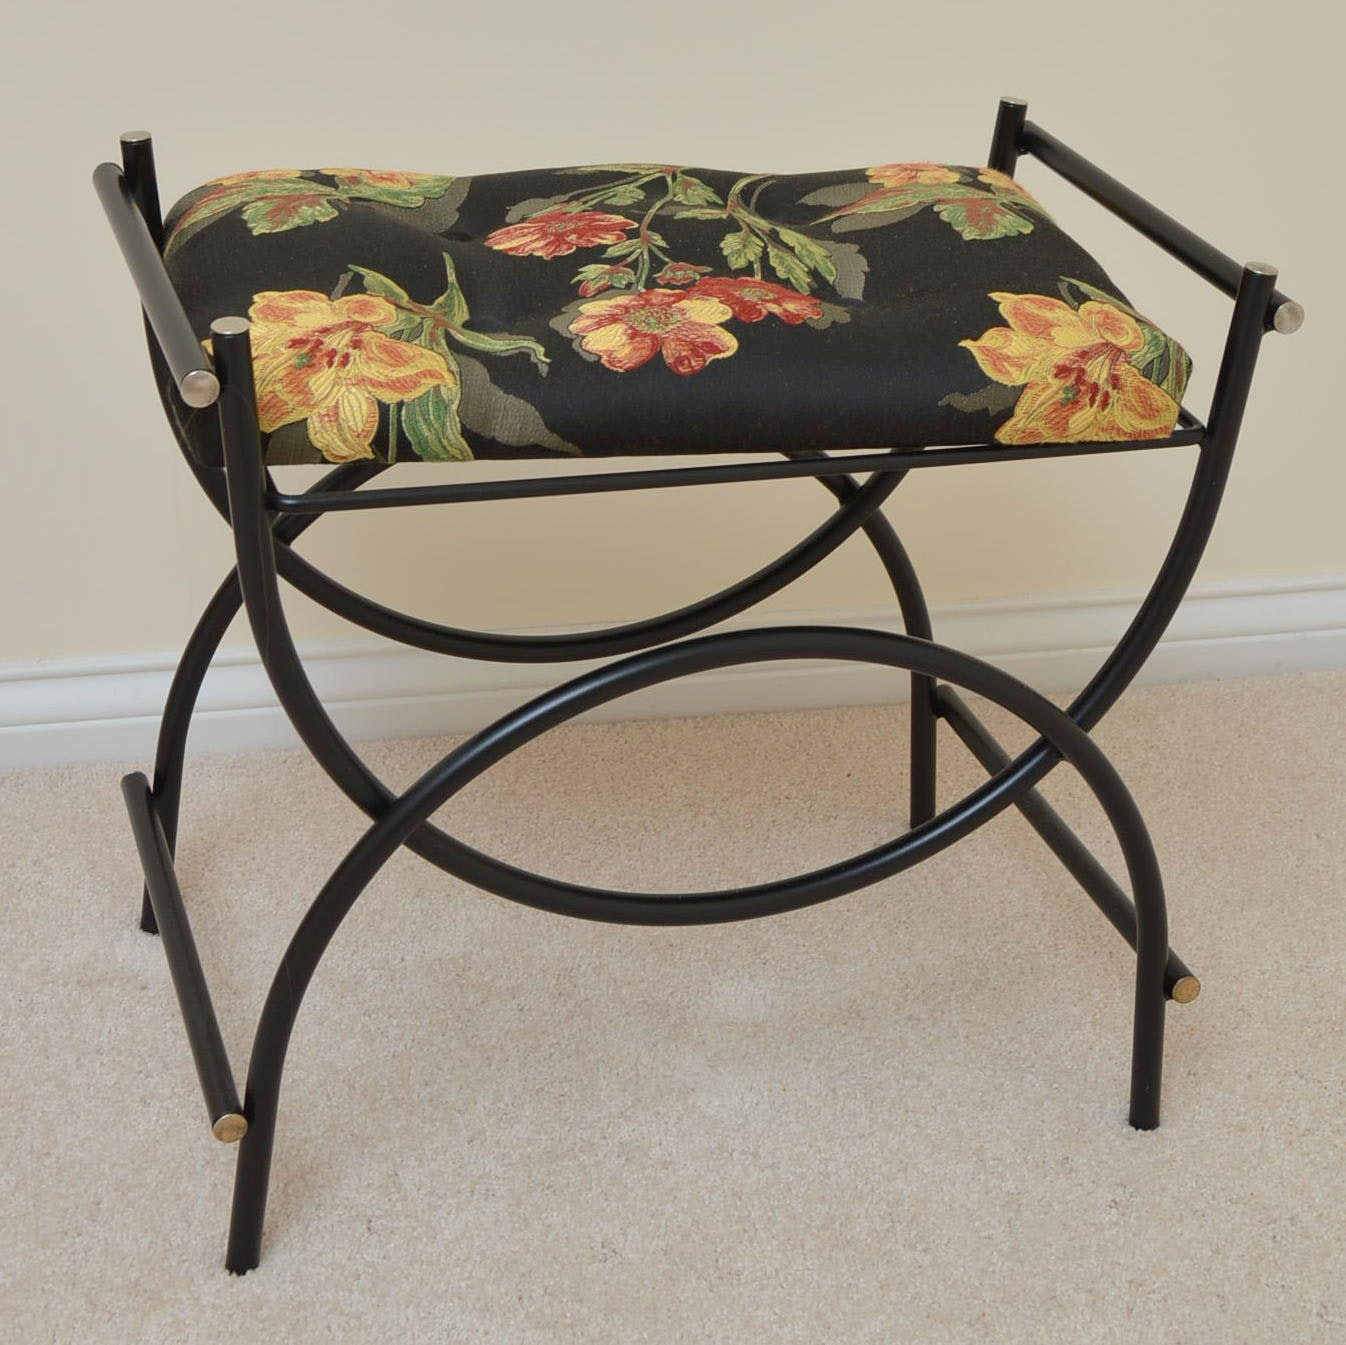 Black Metal Vanity Bench with Upholstered Seat